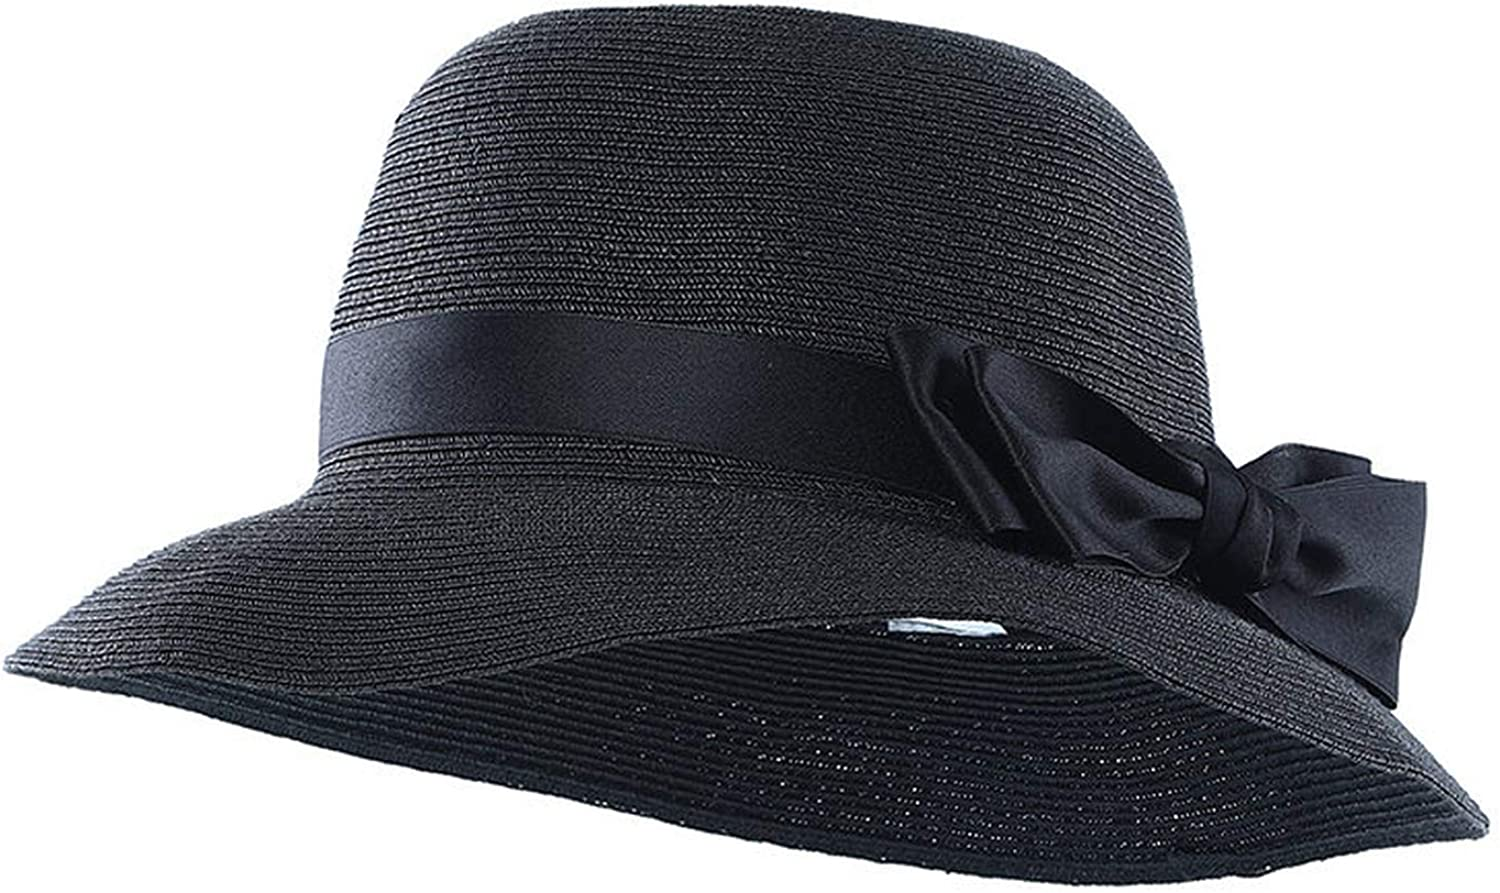 DOSOMI Women Paper Straw Fedora Church Hats Ribbon Bow Cloche Bucket Summer Sun Hat Women Formal Party Cap